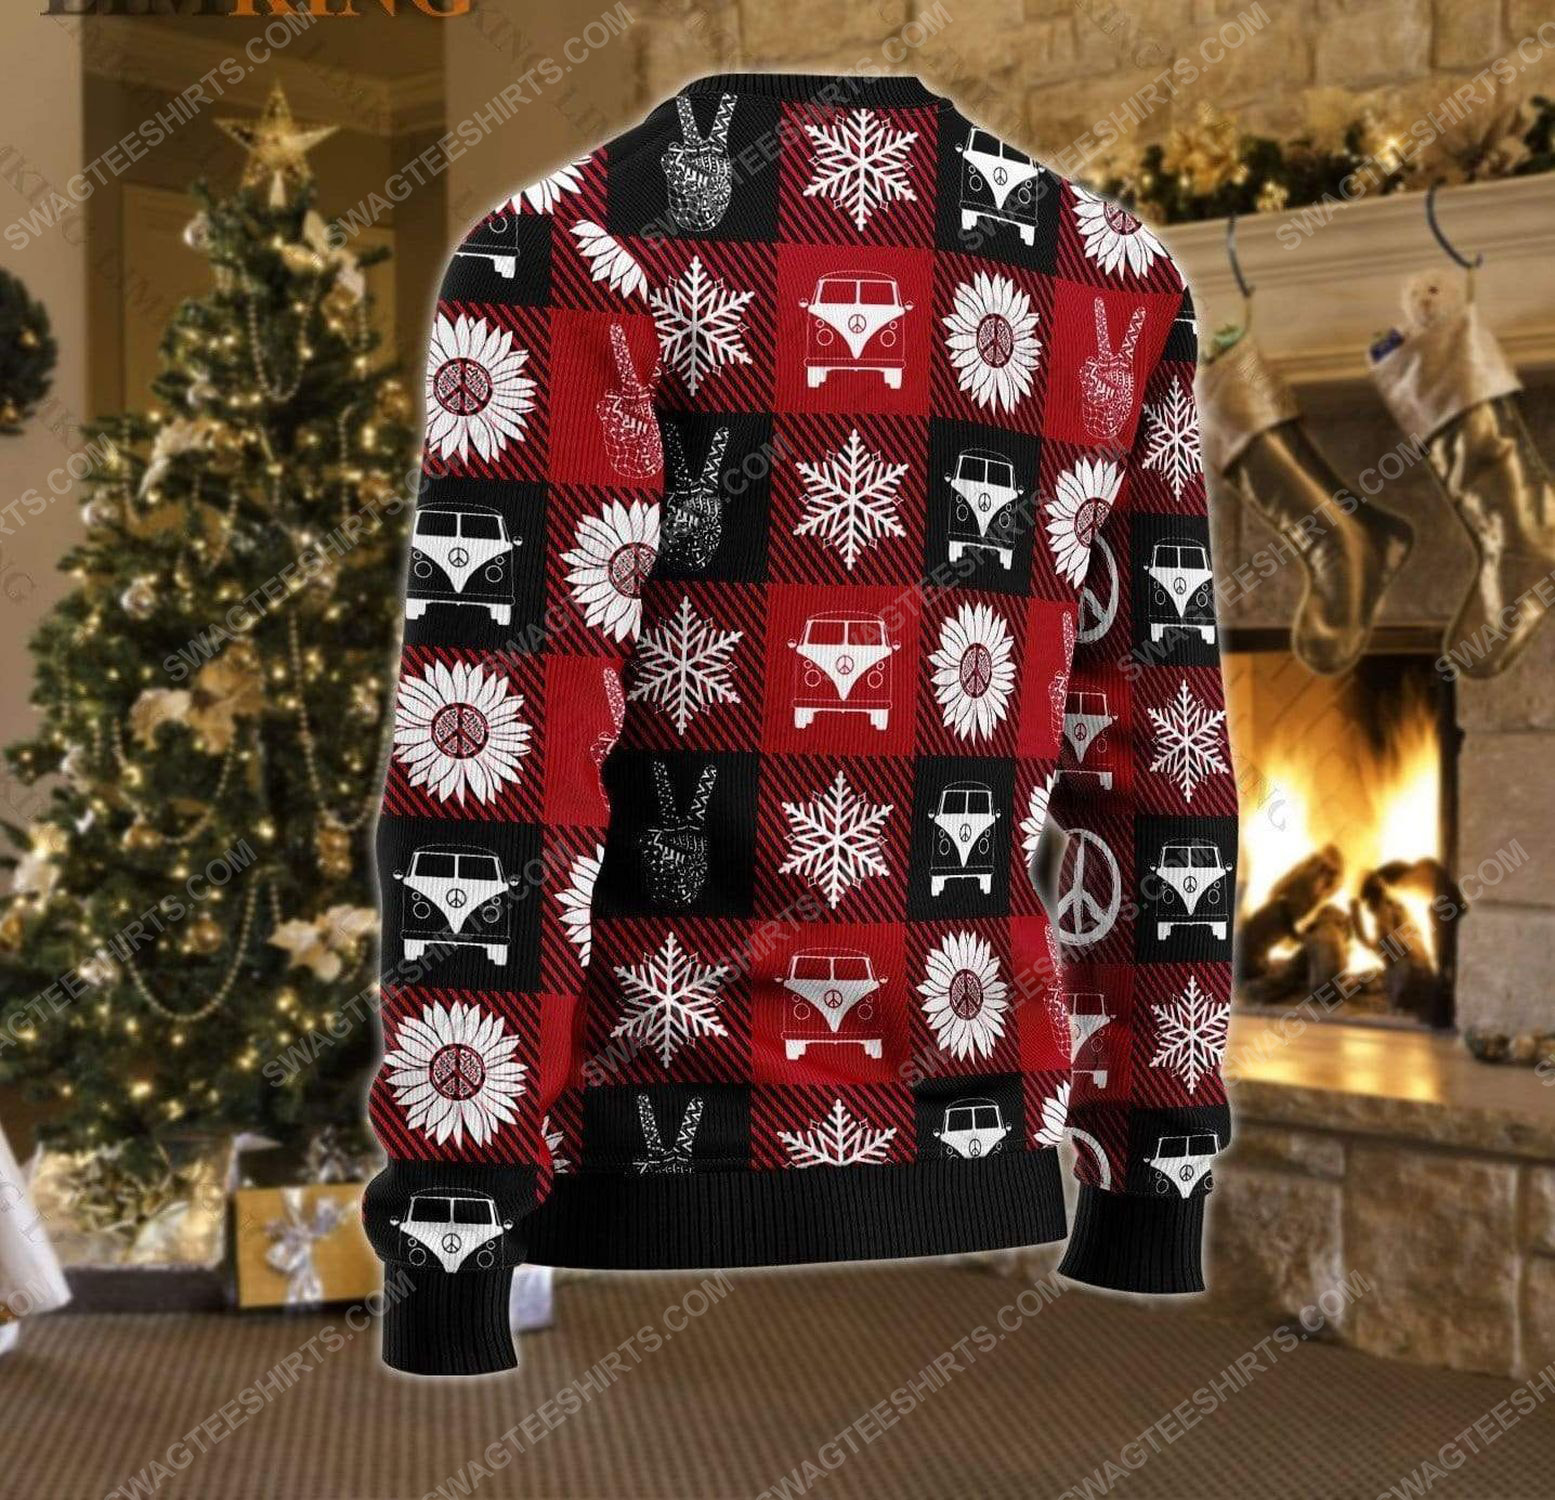 Hippie peace love ugly christmas sweater 3